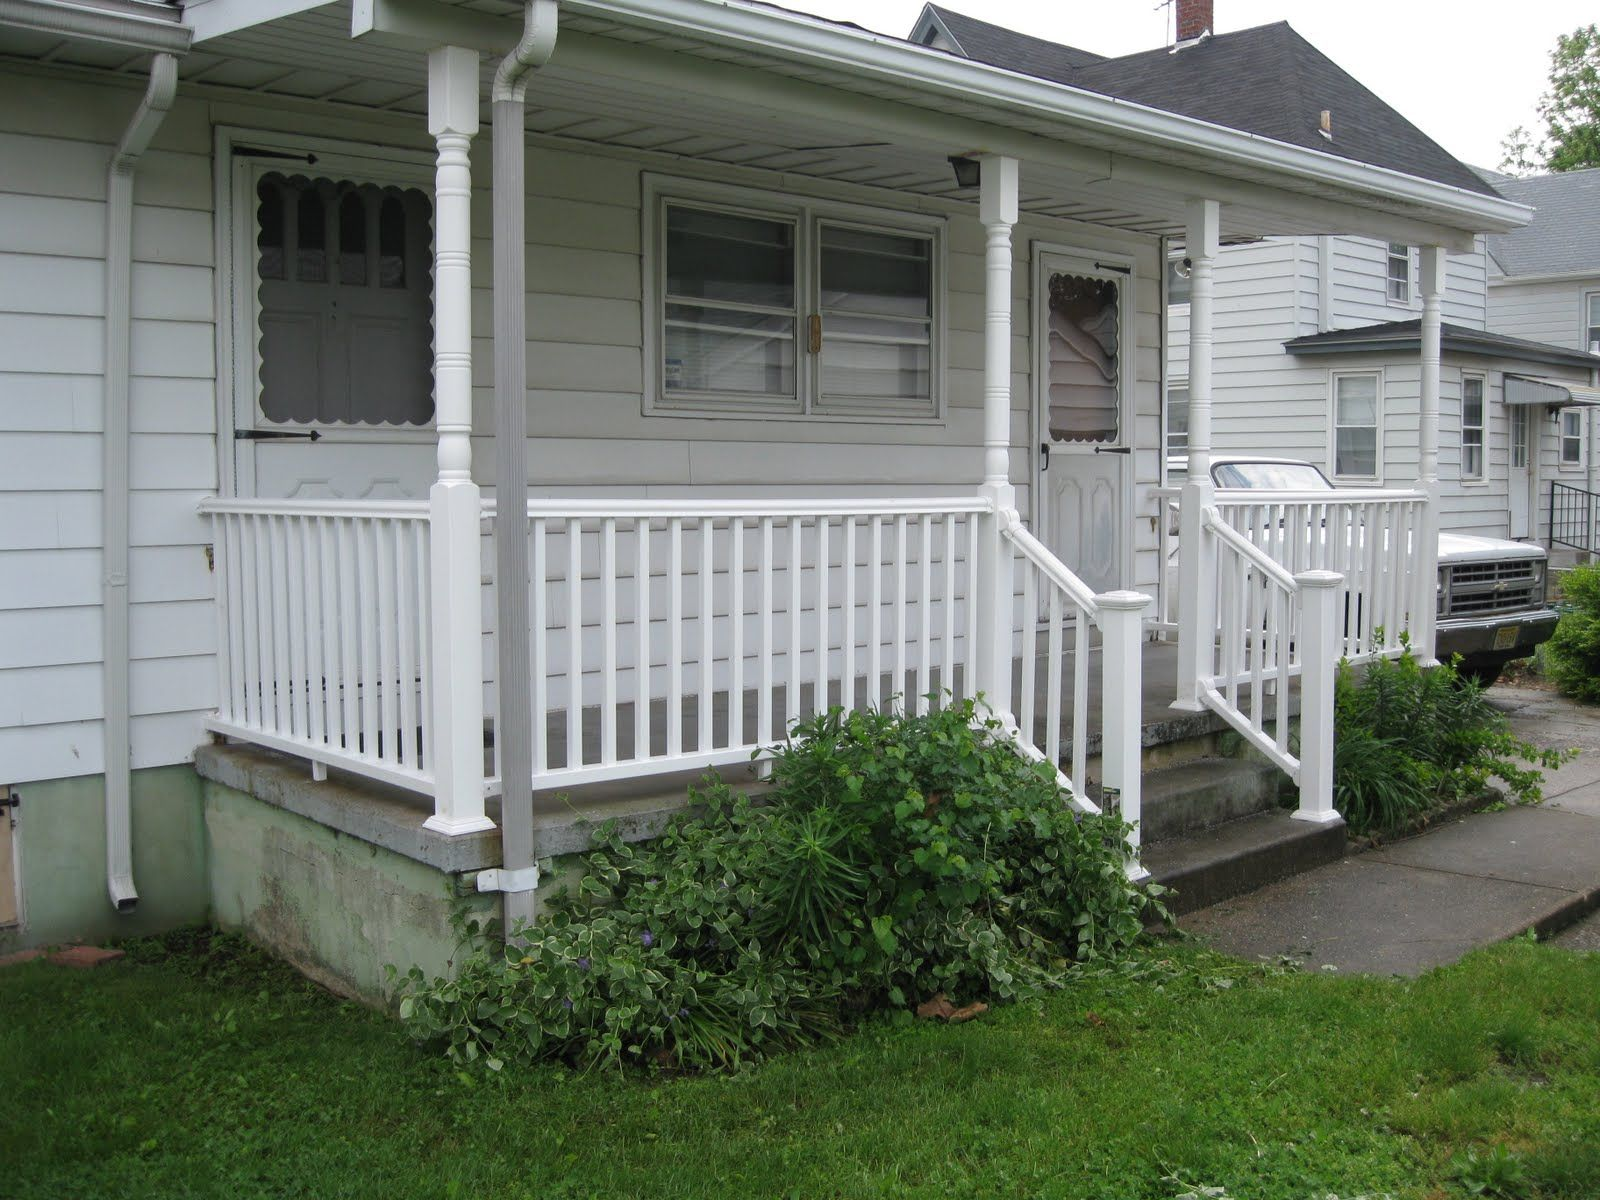 regard cute front regarding to with new ideas railing railings encourage porch brick decoration